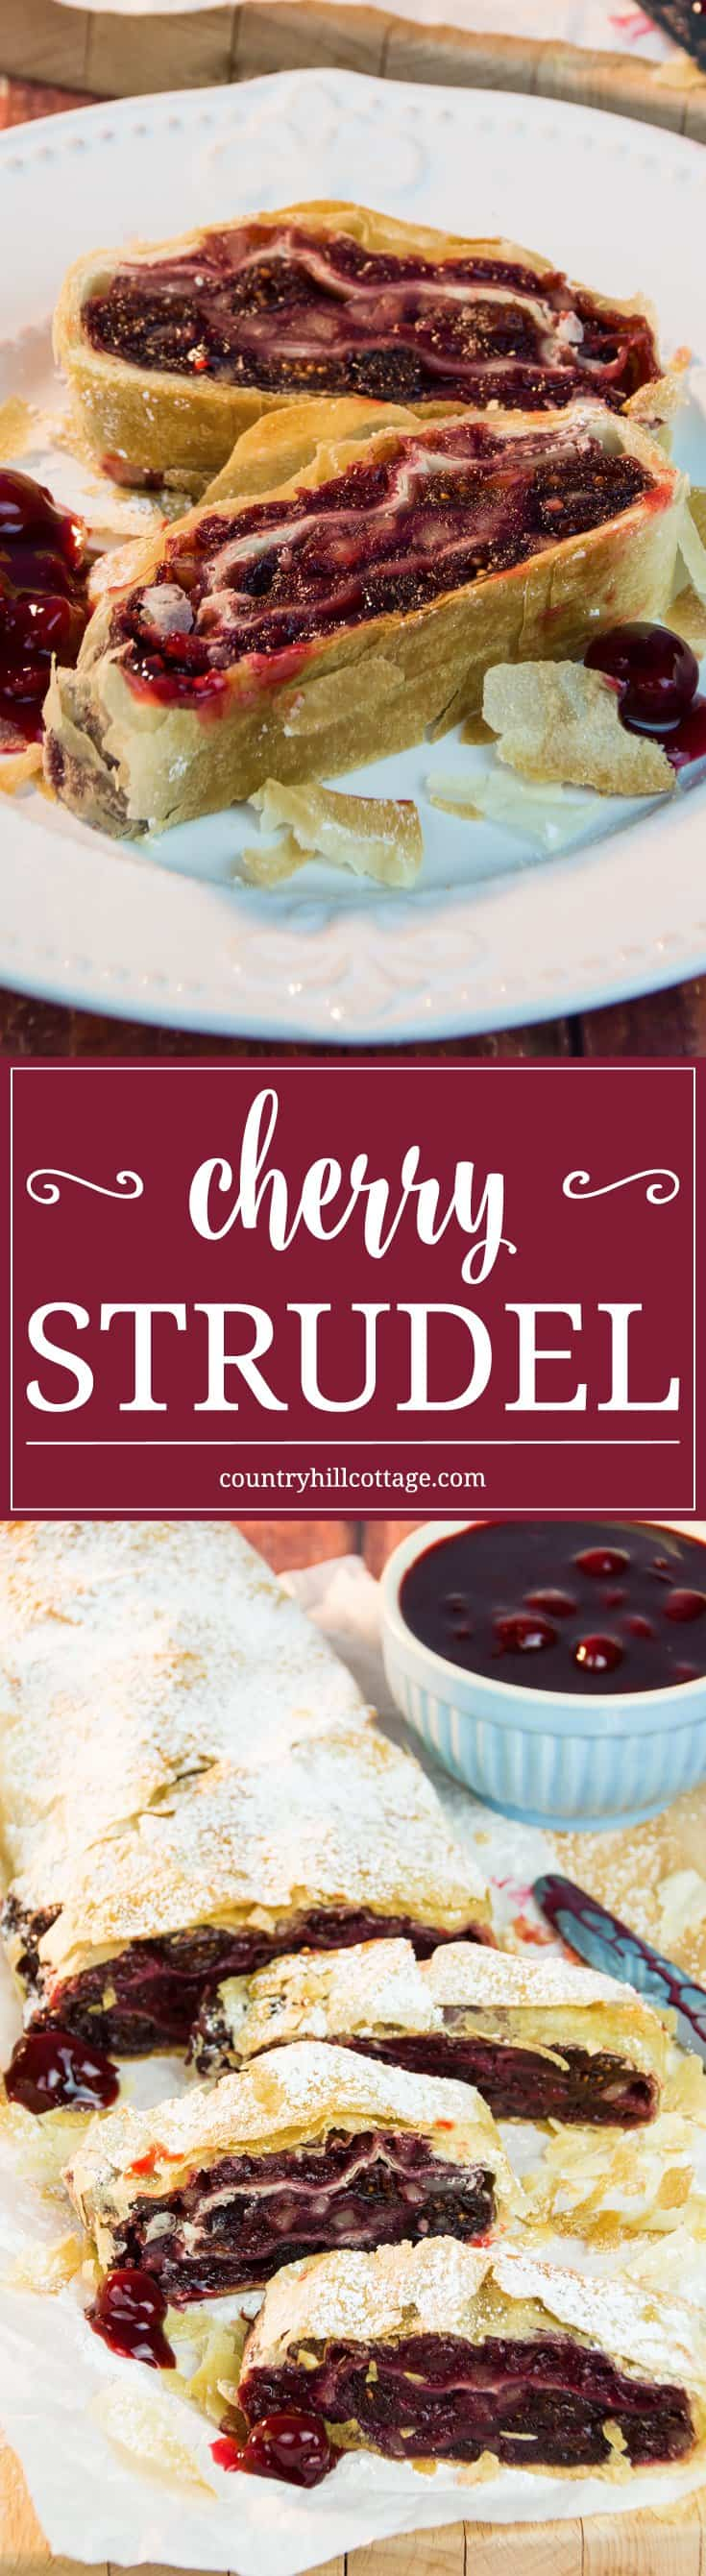 Warm cherry strudel stuffed with cranberries and almonds is a classic dessert and tastes delicious with whipped cream and ice cream! #cherry #strudel #dessert | countryhillcottage.com